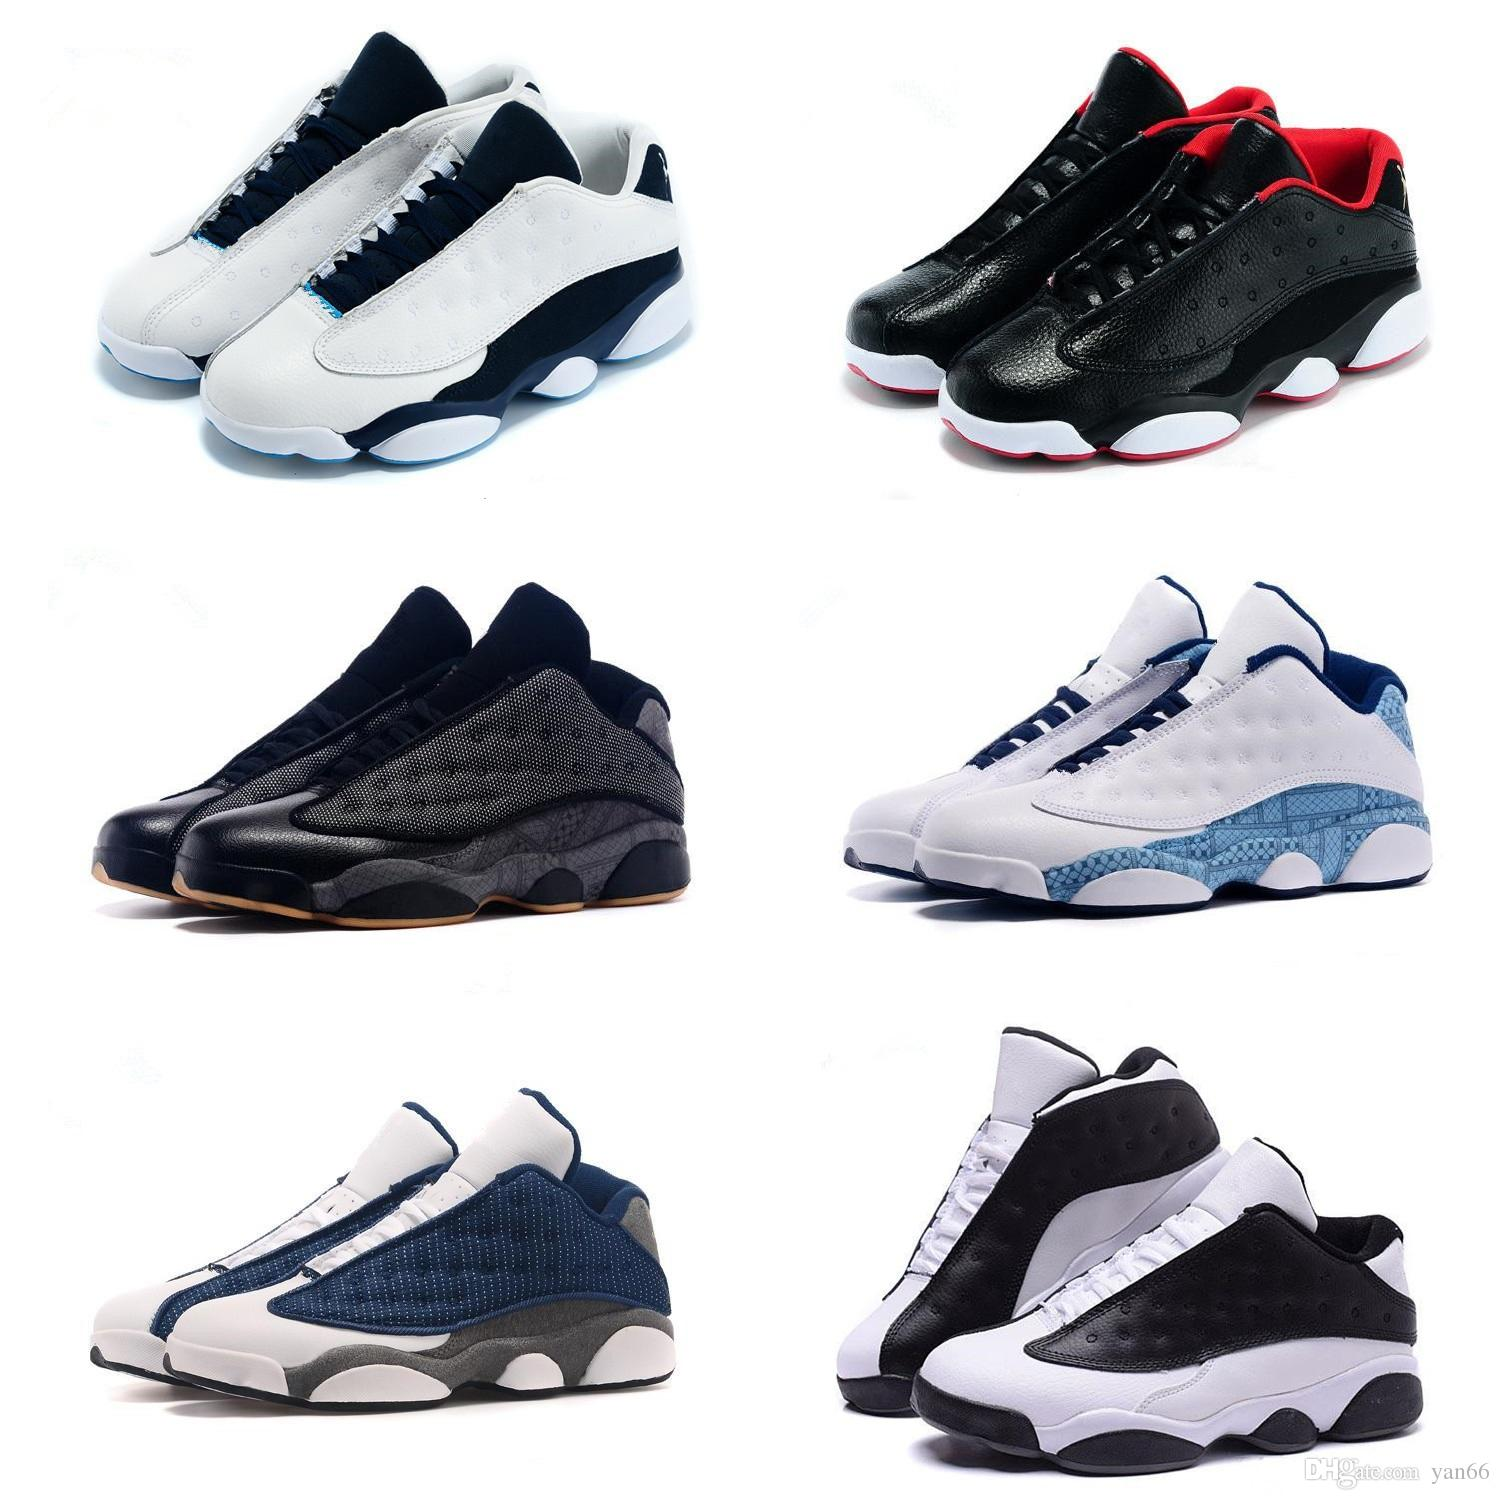 eab3c575cff New Products Men's 13 Low 13s Basketball Shoes Sneakers Cheap Top ...